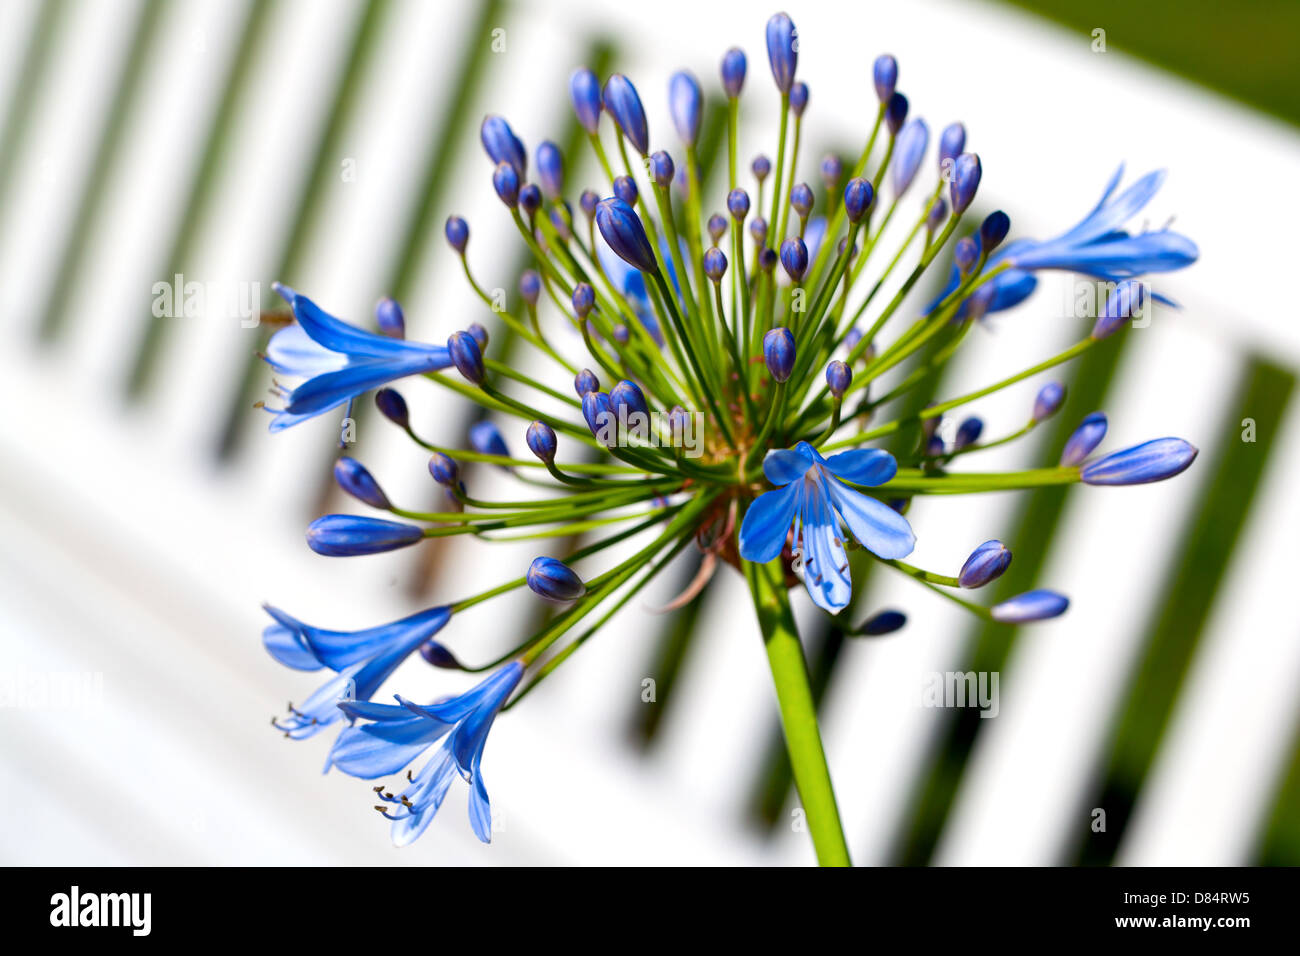 Agapanthus africanus (African lily) - Stock Image